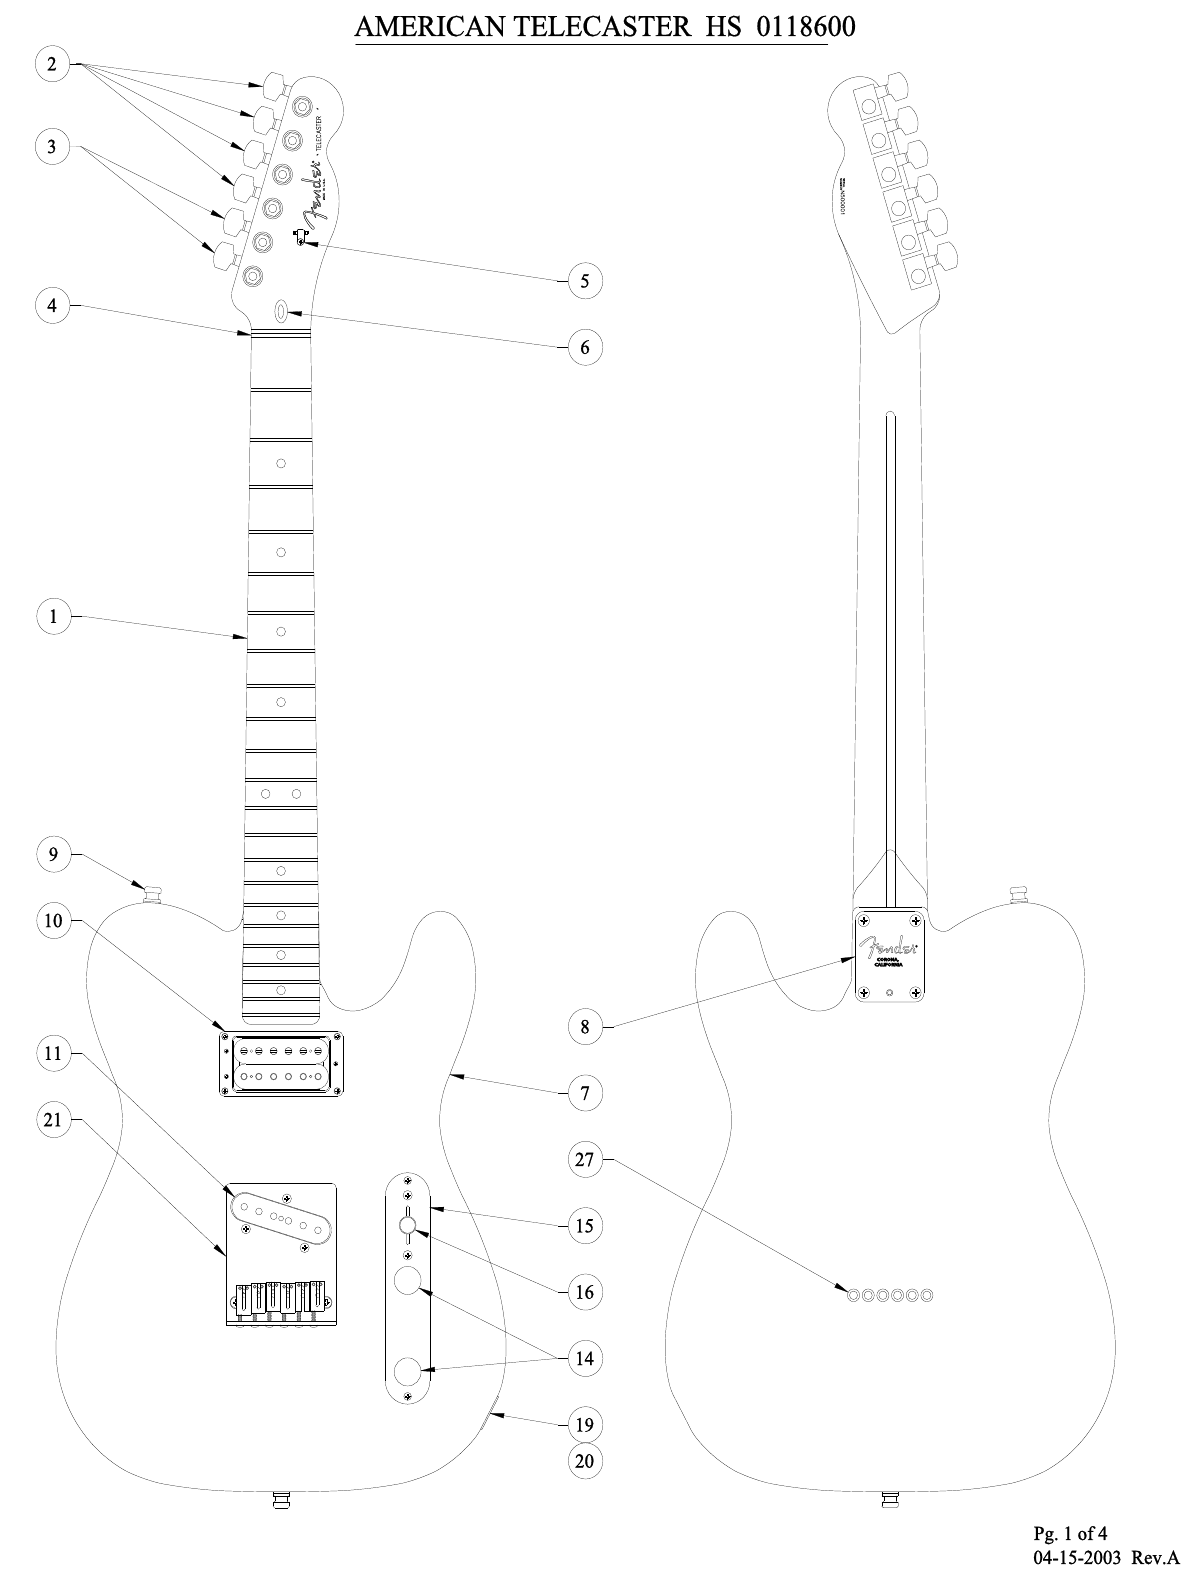 Hs Telecaster Wiring Diagram from usermanual.wiki